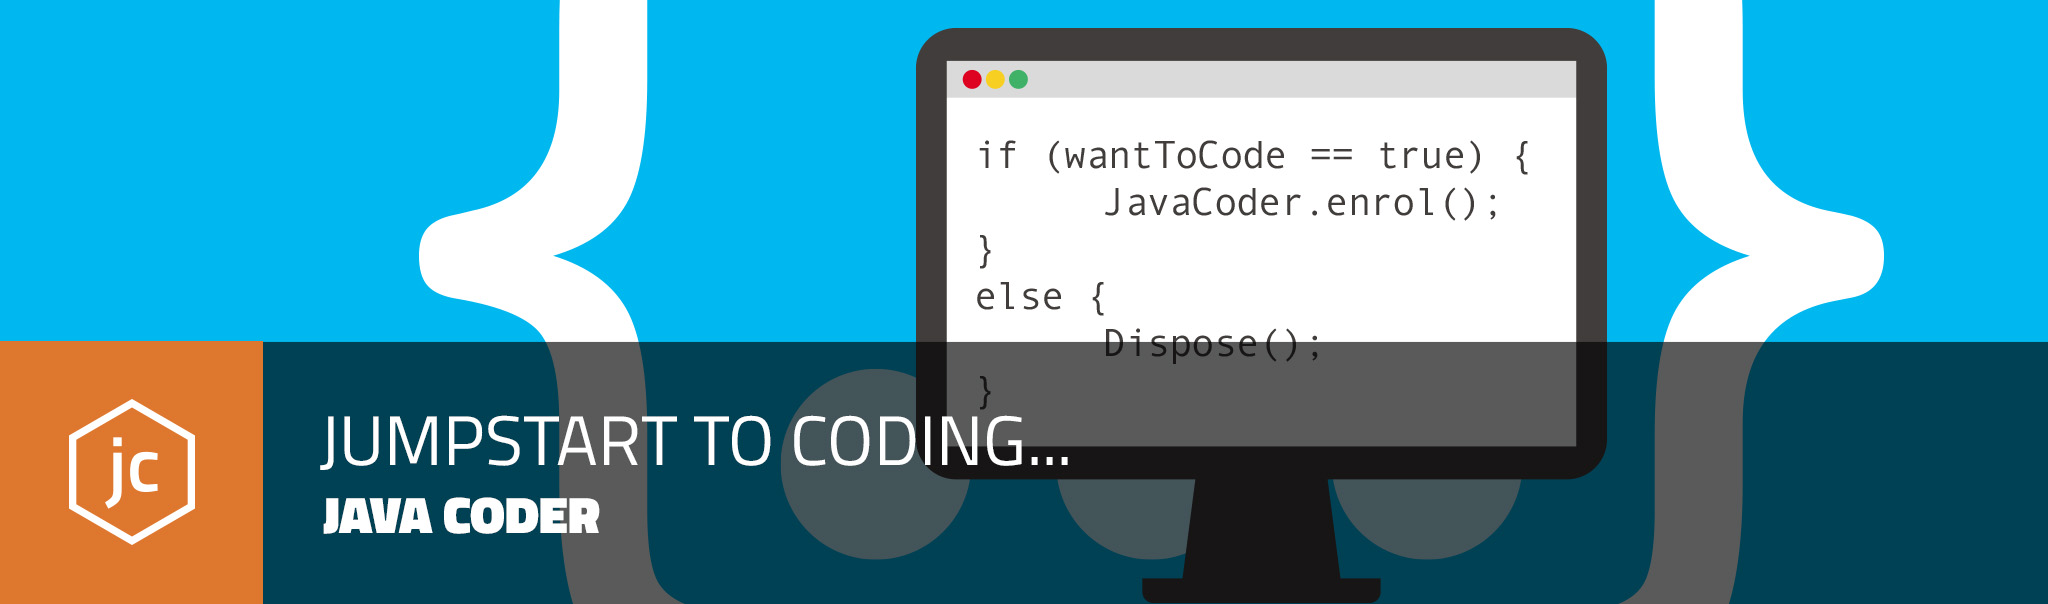 Java Coder Level 1 - Jumpstart to Coding...